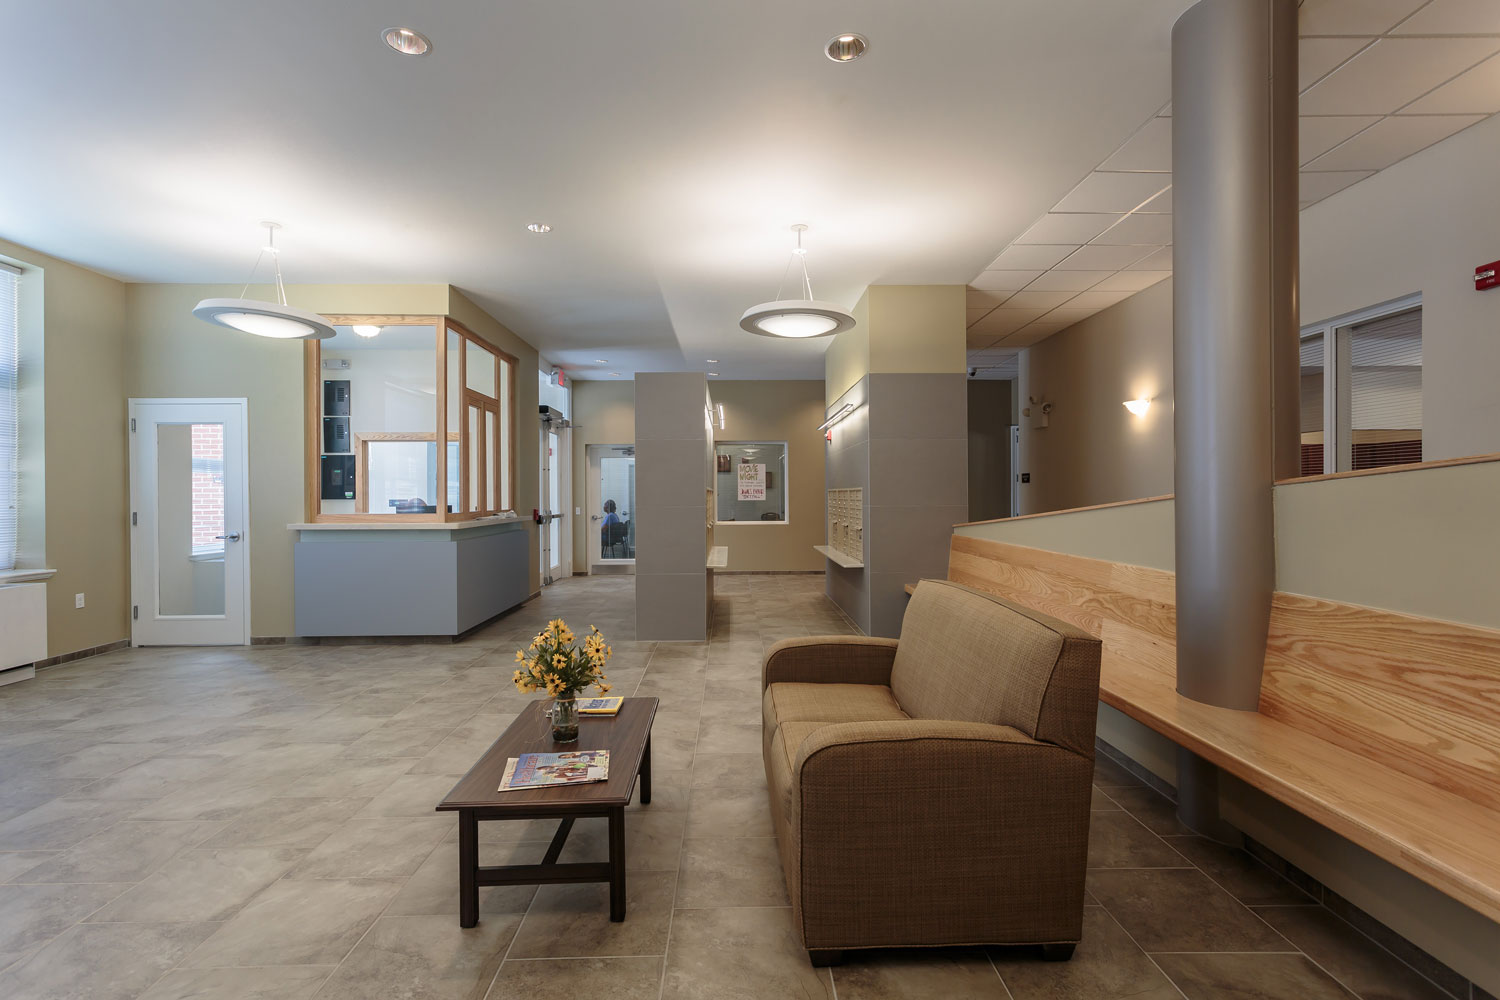 The lobby and lounge area at The Friedrichs.